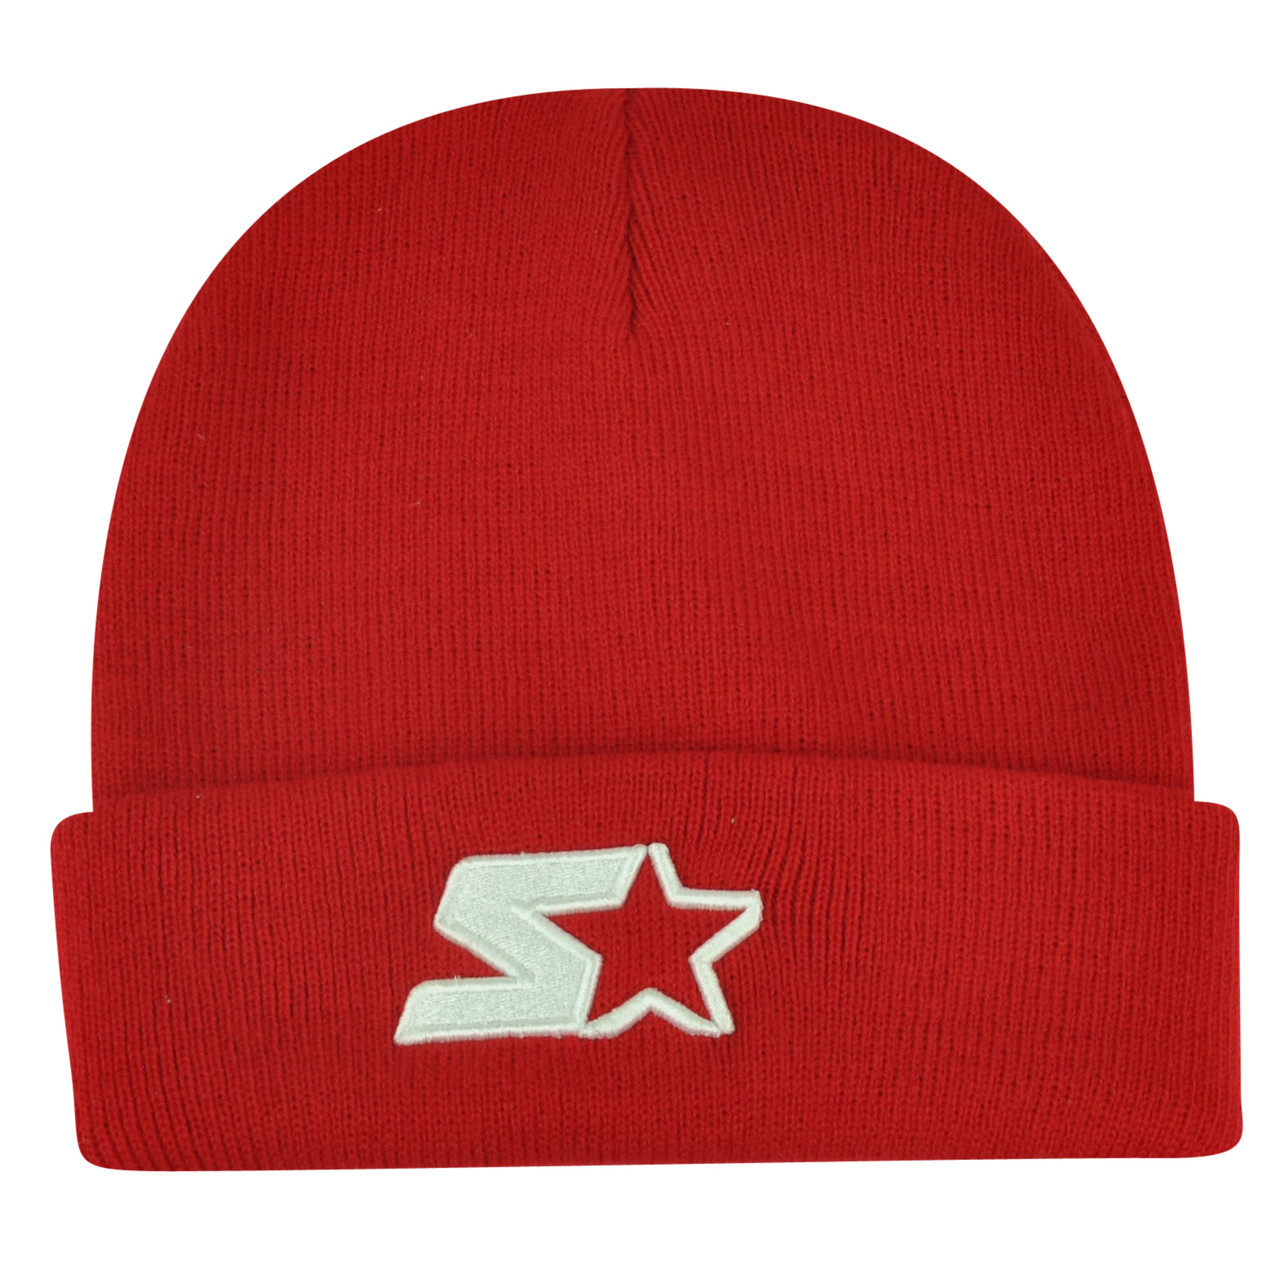 a2dd7cbd84e57 Starter Blank Red Knit Beanie Cuffed Toque Winter Hat Skully Plain Solid  Thick - Cap Store Online.com